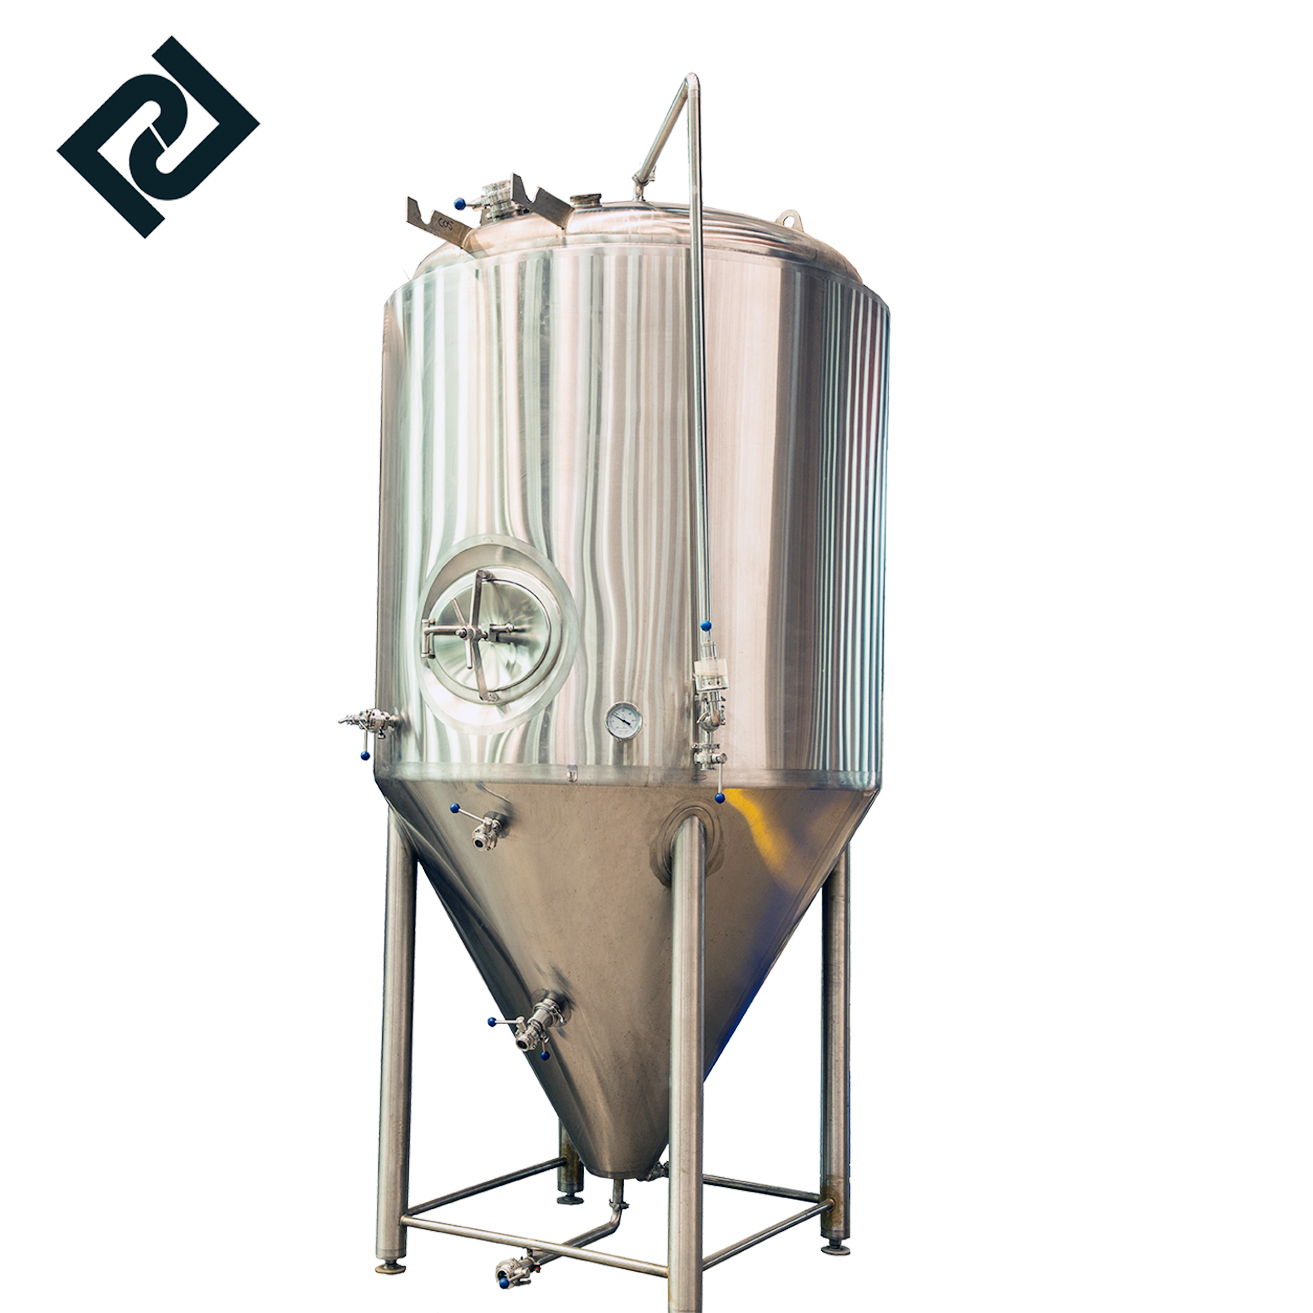 Cheap PriceList for 3000l Full Set Beer Brewing Equipment For Brewery - 20HL 15BBL 2000L stainless steel beer brewing equipment  beer fermenter  fermentation tank – Pijiang